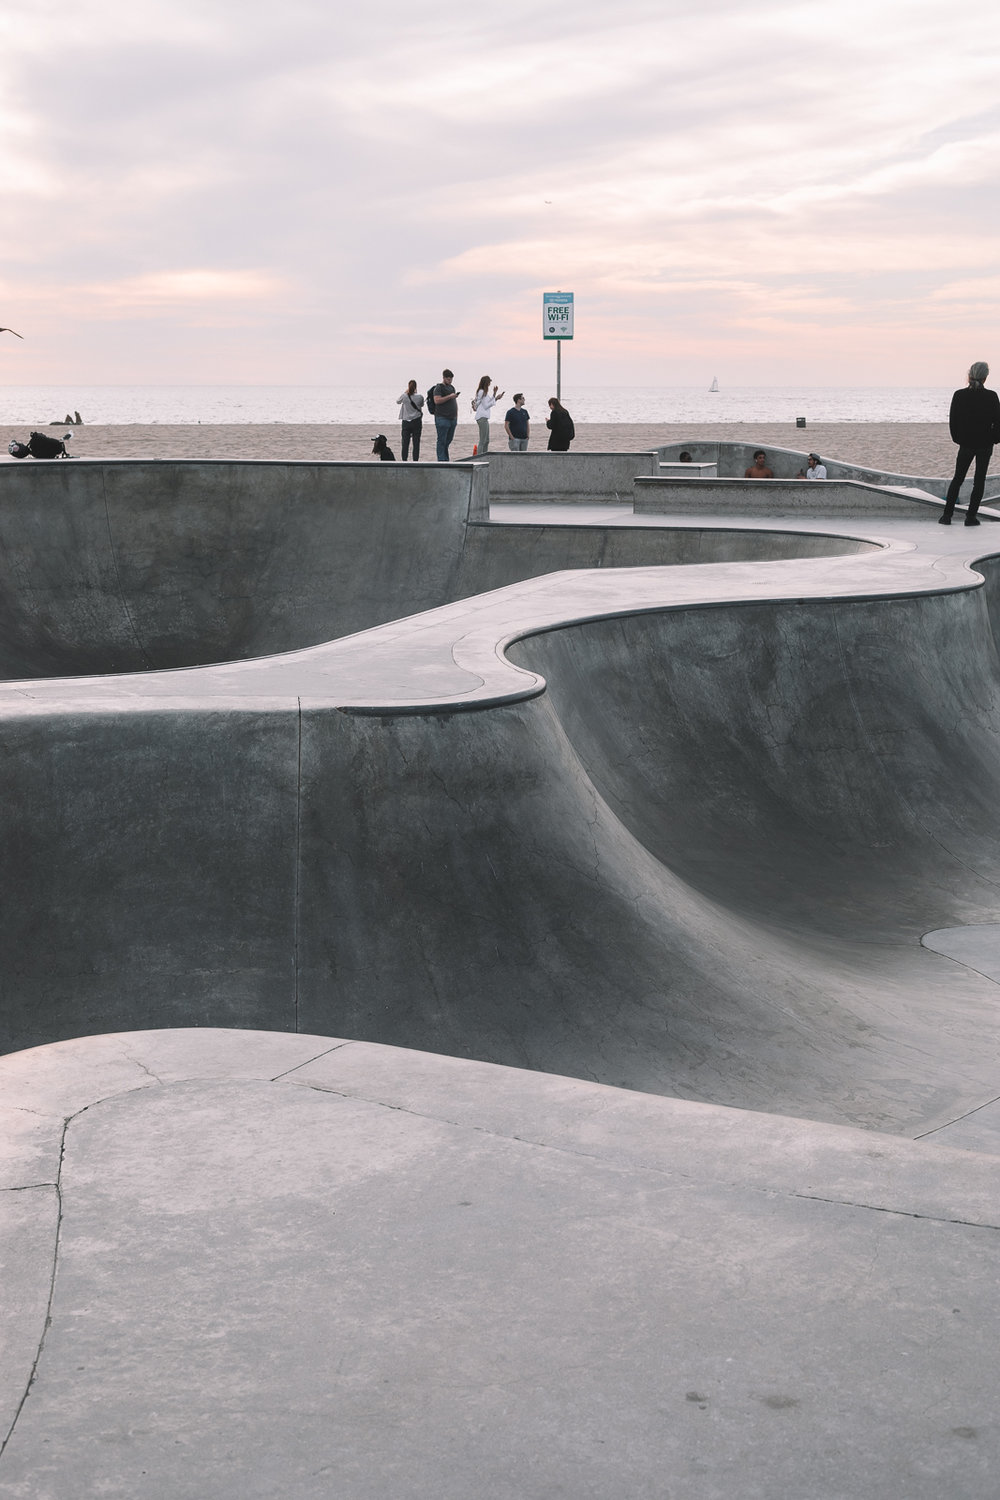 Skate Park Sunset Palm Leaves Venice Beach Photography  / Canon 5D Mark IV / kelly creative